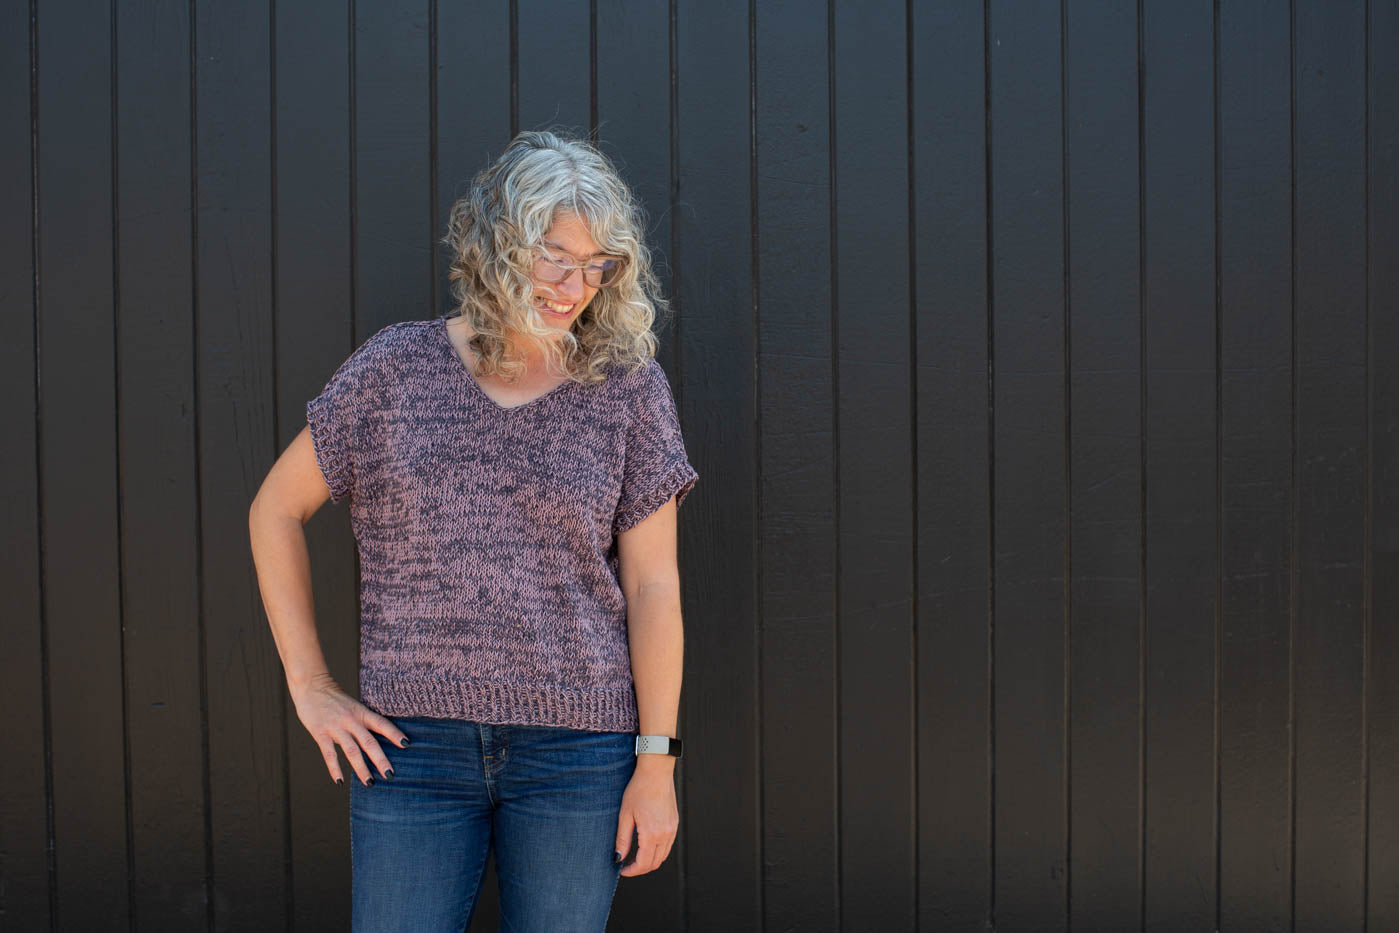 Jaime standing in front of a black wall wearing a knitted Rift Tee in slate gray and mauve with blue jeans.  Jaime is standing straight on looking down to her left with her right hand on her hip.